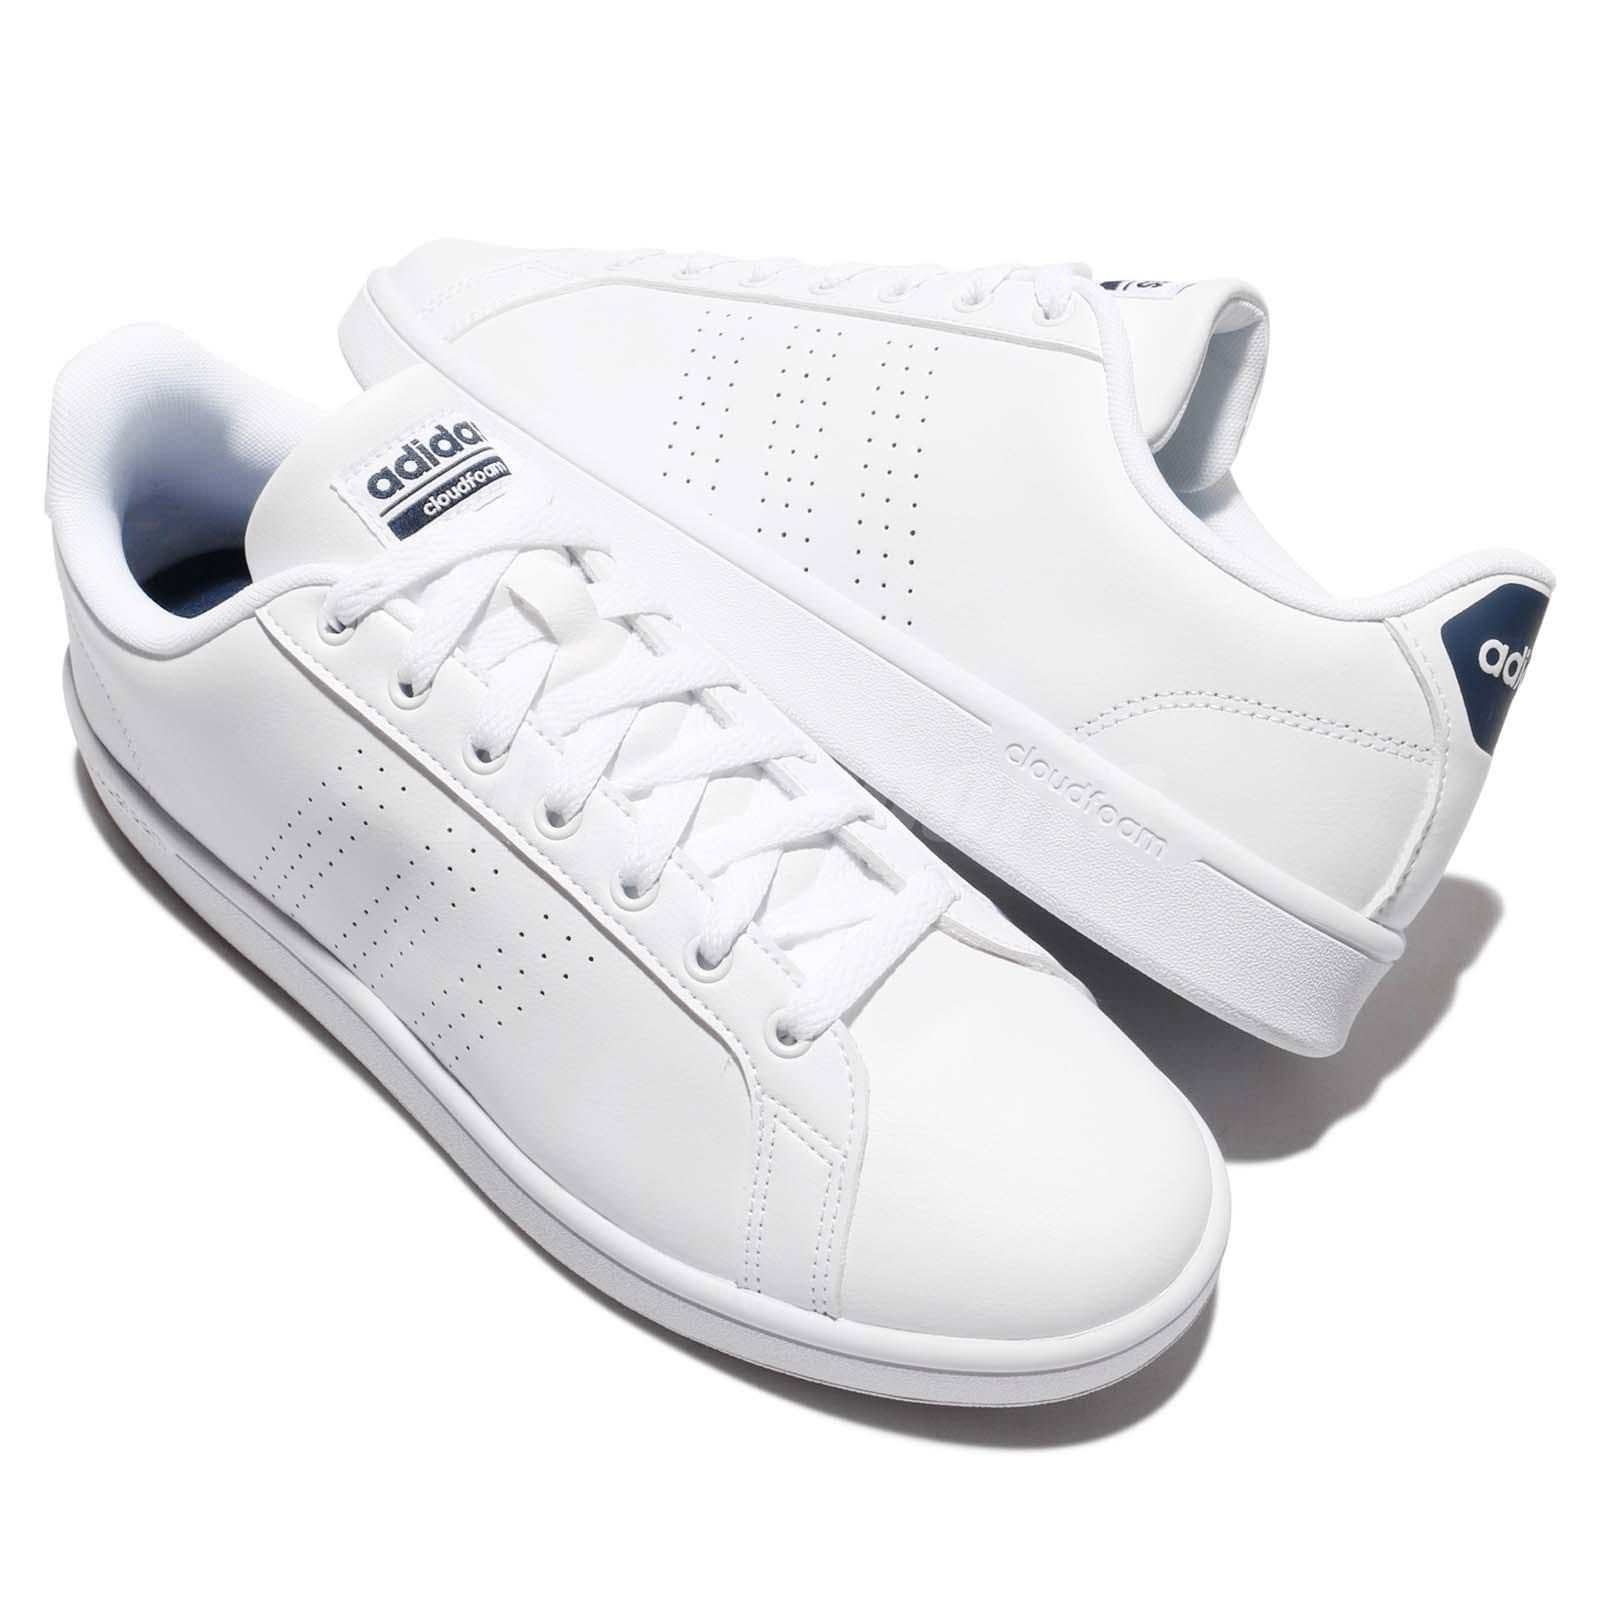 low priced fbb54 cca35 Shop Adidas Womens CF Advantage CL Low Top Lace Up Fashion Sneakers - Free  Shipping On Orders Over  45 - Overstock - 21138224